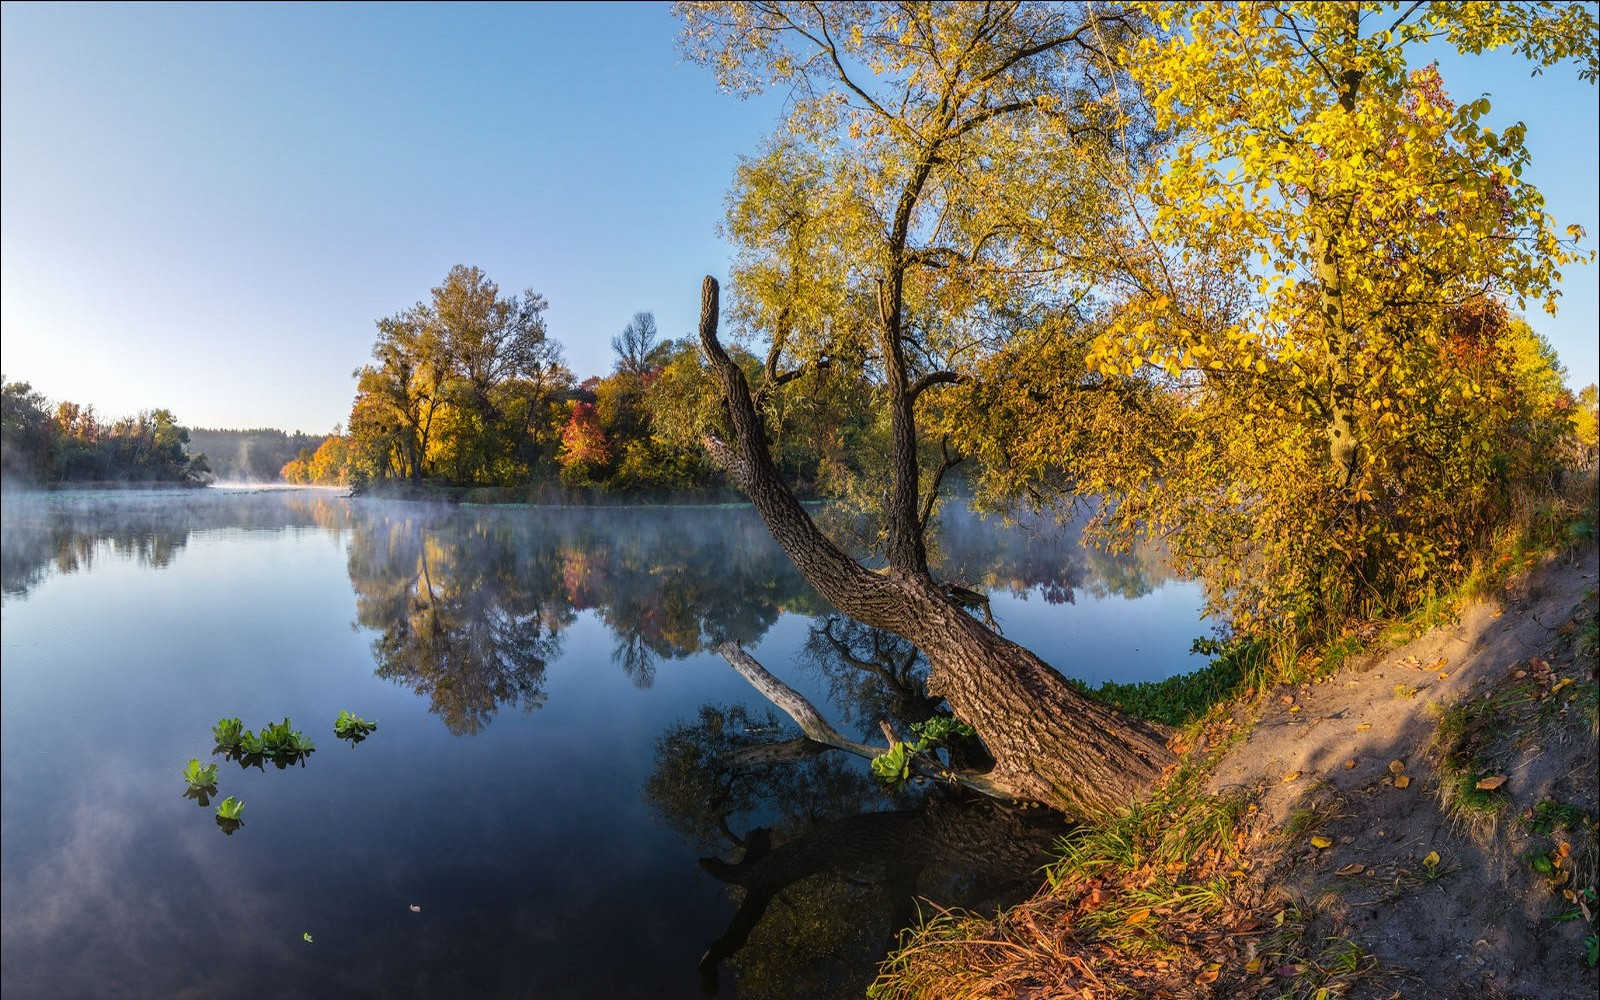 3d Hd Scenery Wallpapers Landscape Photography Nature Fall River Trees